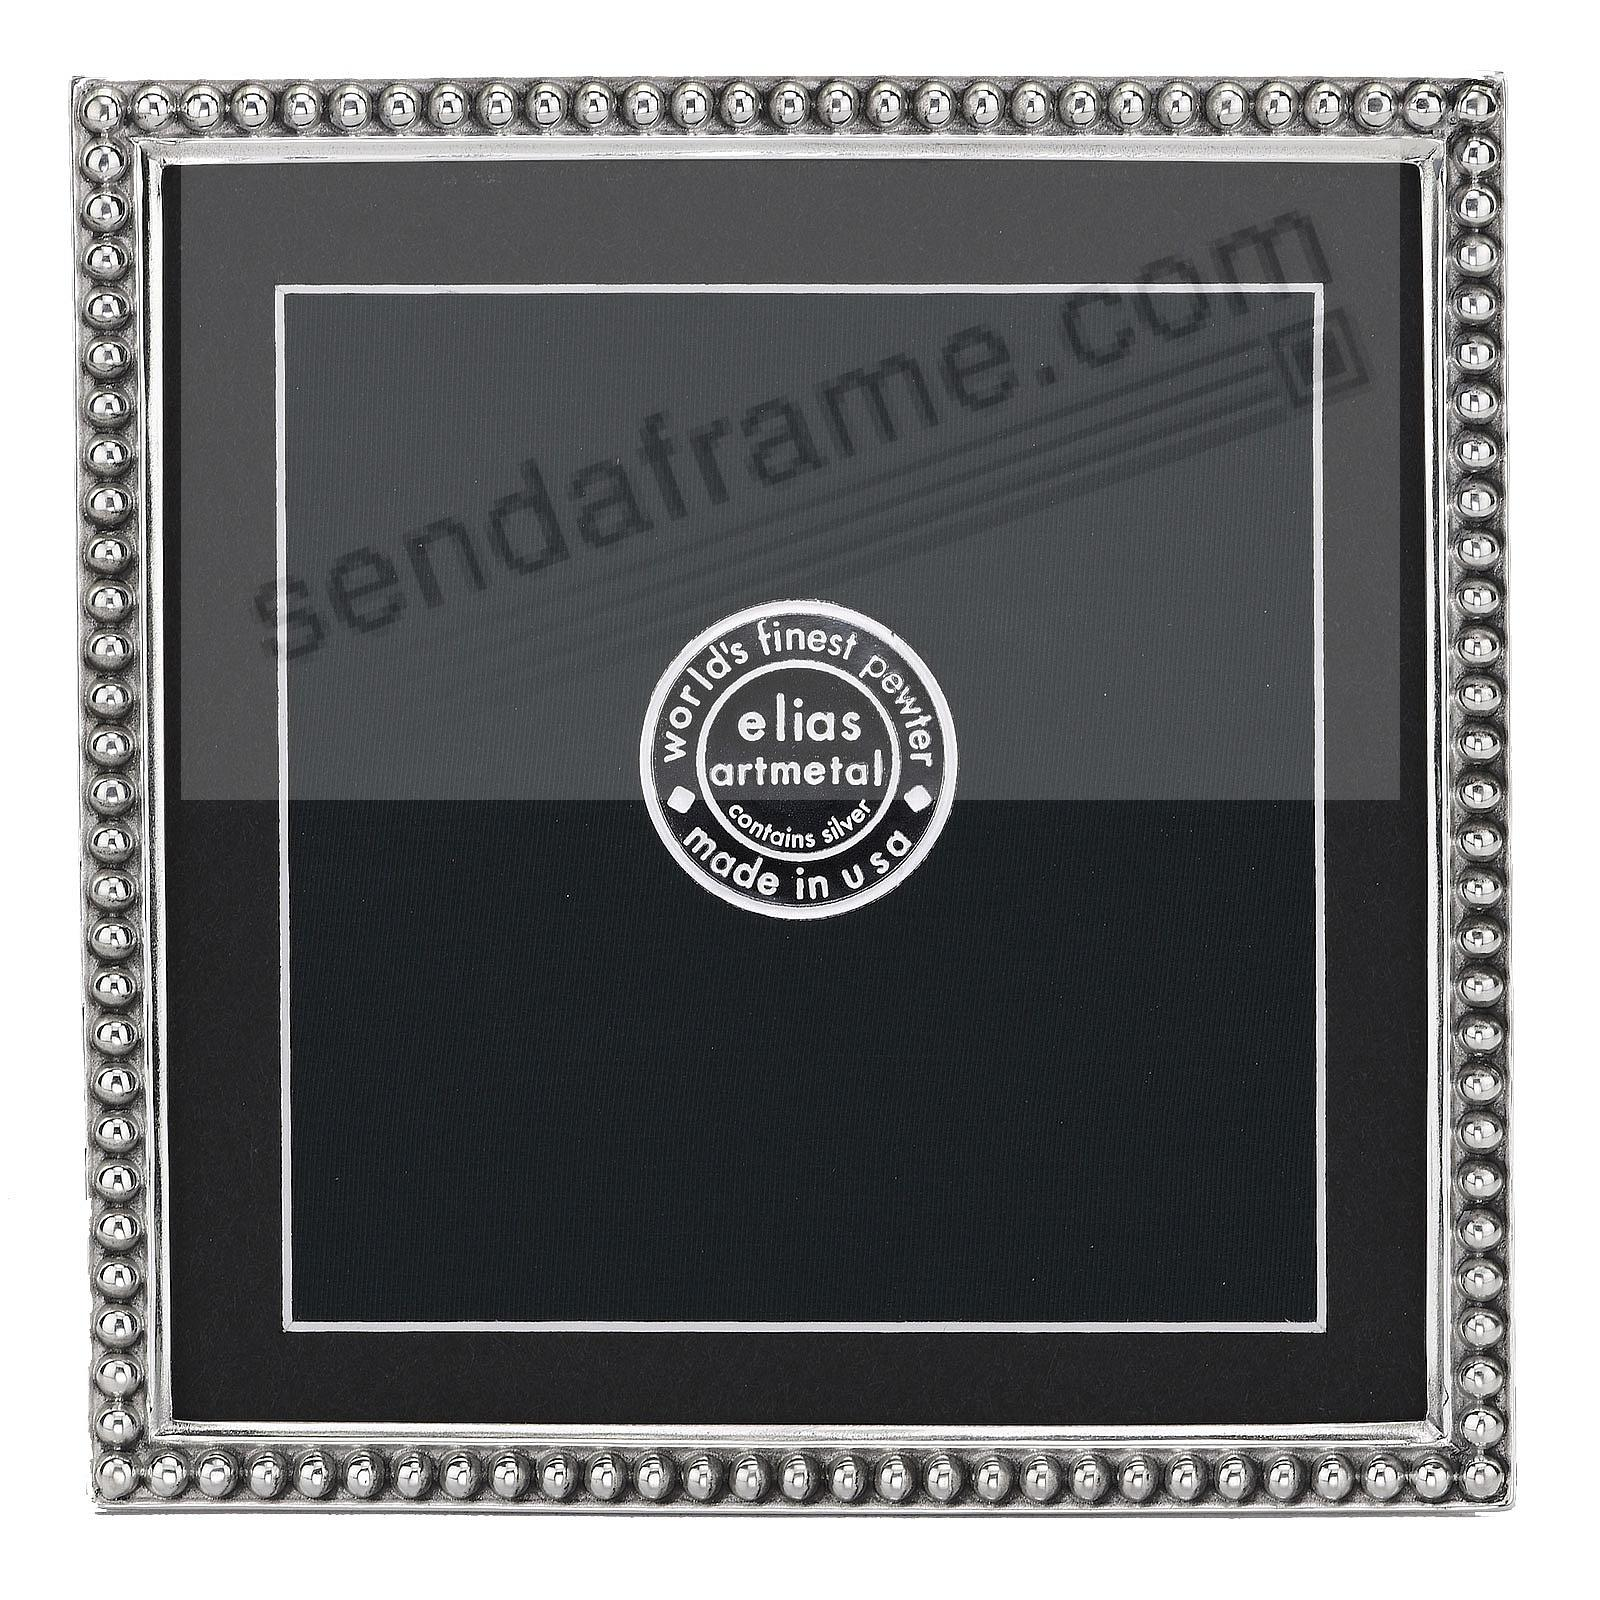 JUST BEADS Fine Pewter 5x5/4½x4½ frame by Elias Artmetal® - now in a proof size!